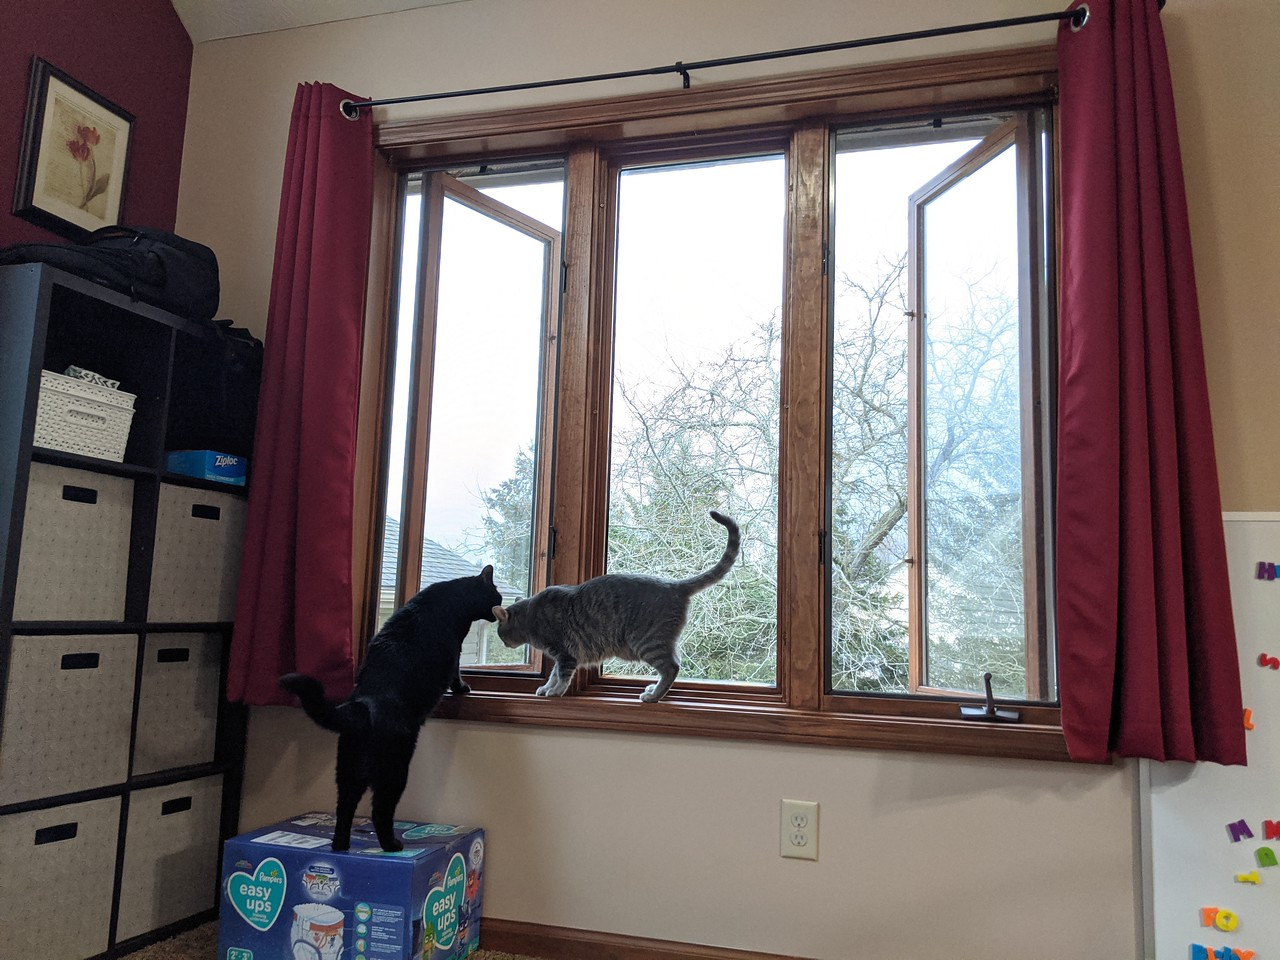 Cats enjoying the open windows (with screens) at 1:45 on March 28, 2020